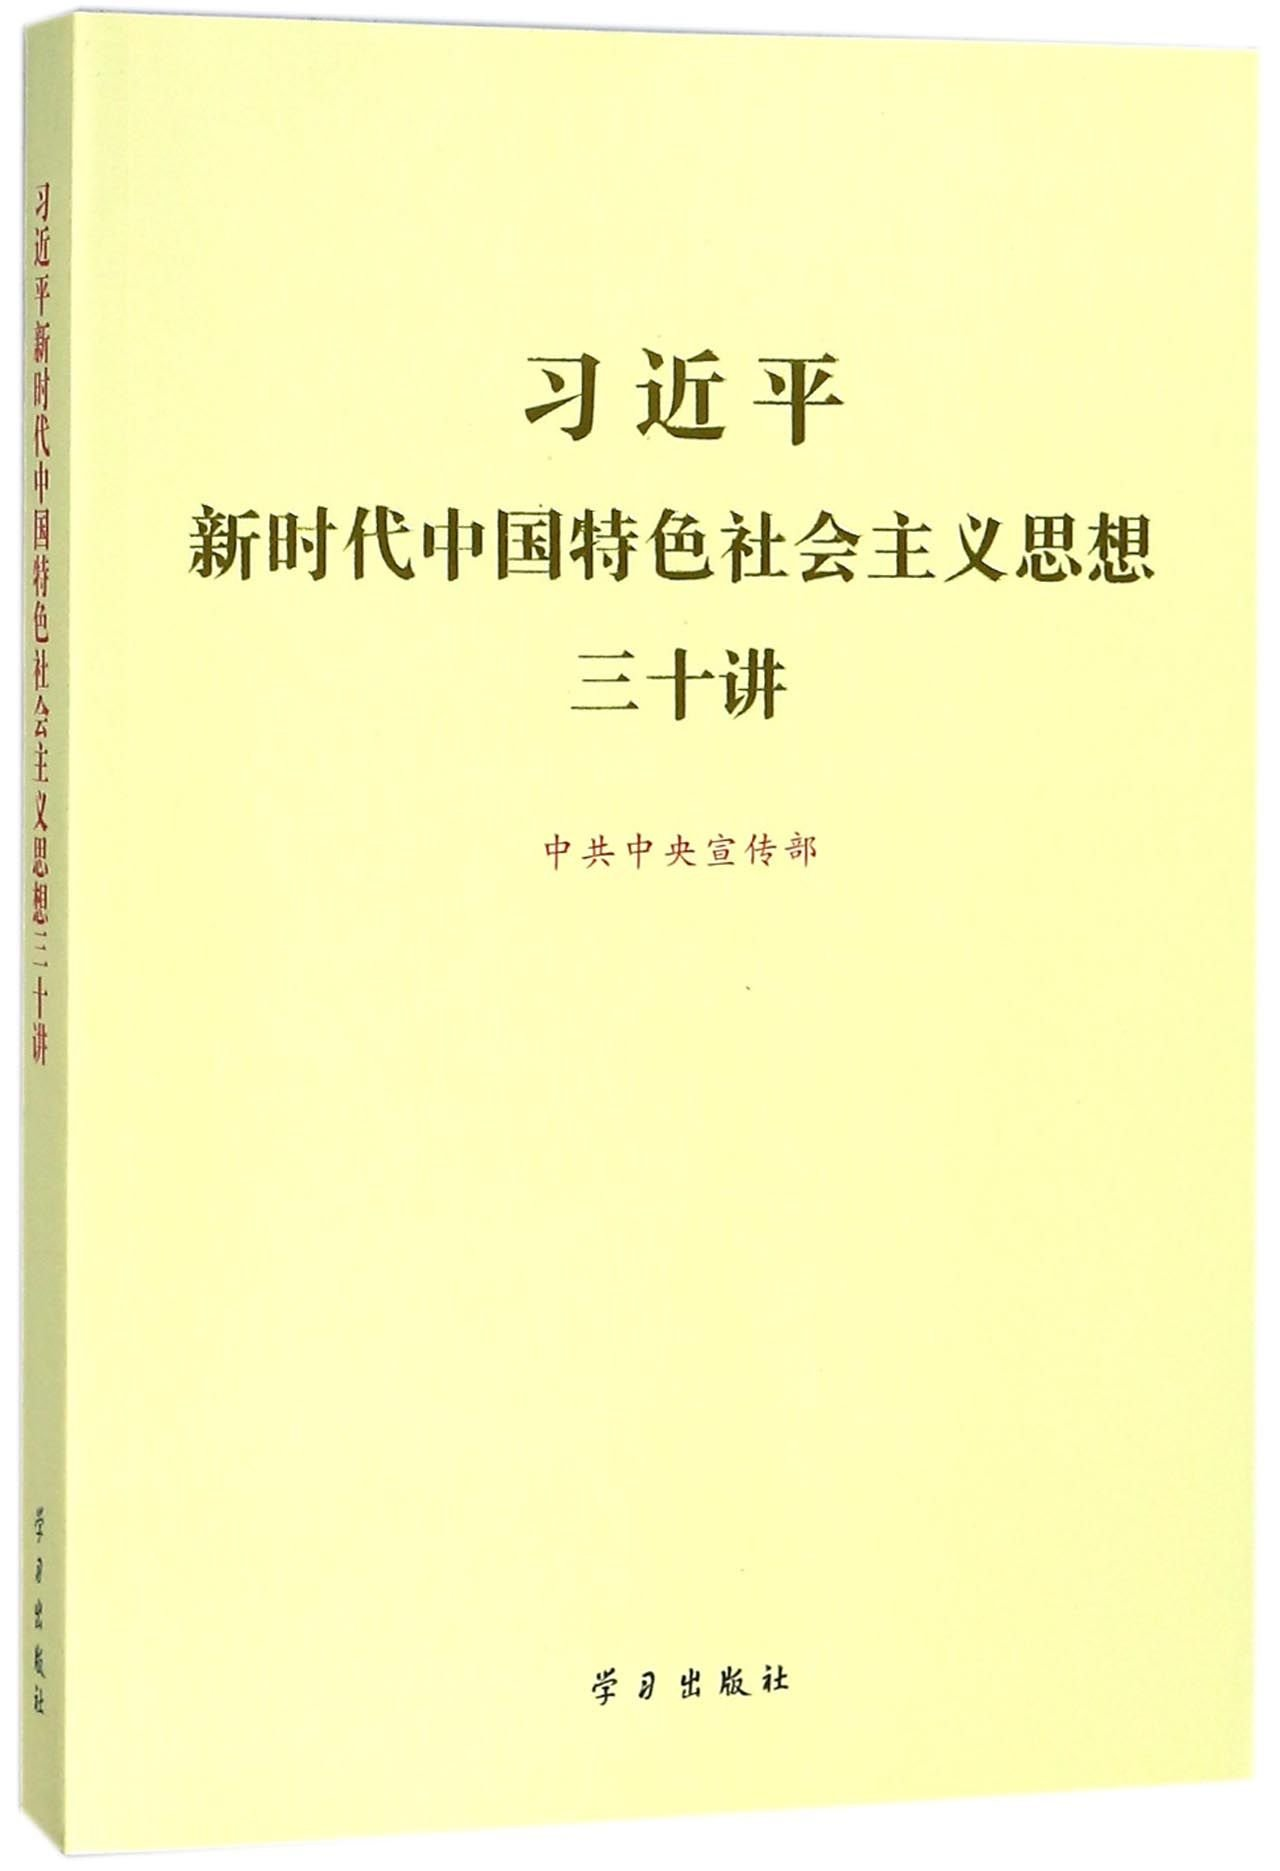 Read Online 30 Lectures on Xi Jinping Thought on Socialism with Chinese Characteristics for a New Era (Chinese Edition) PDF